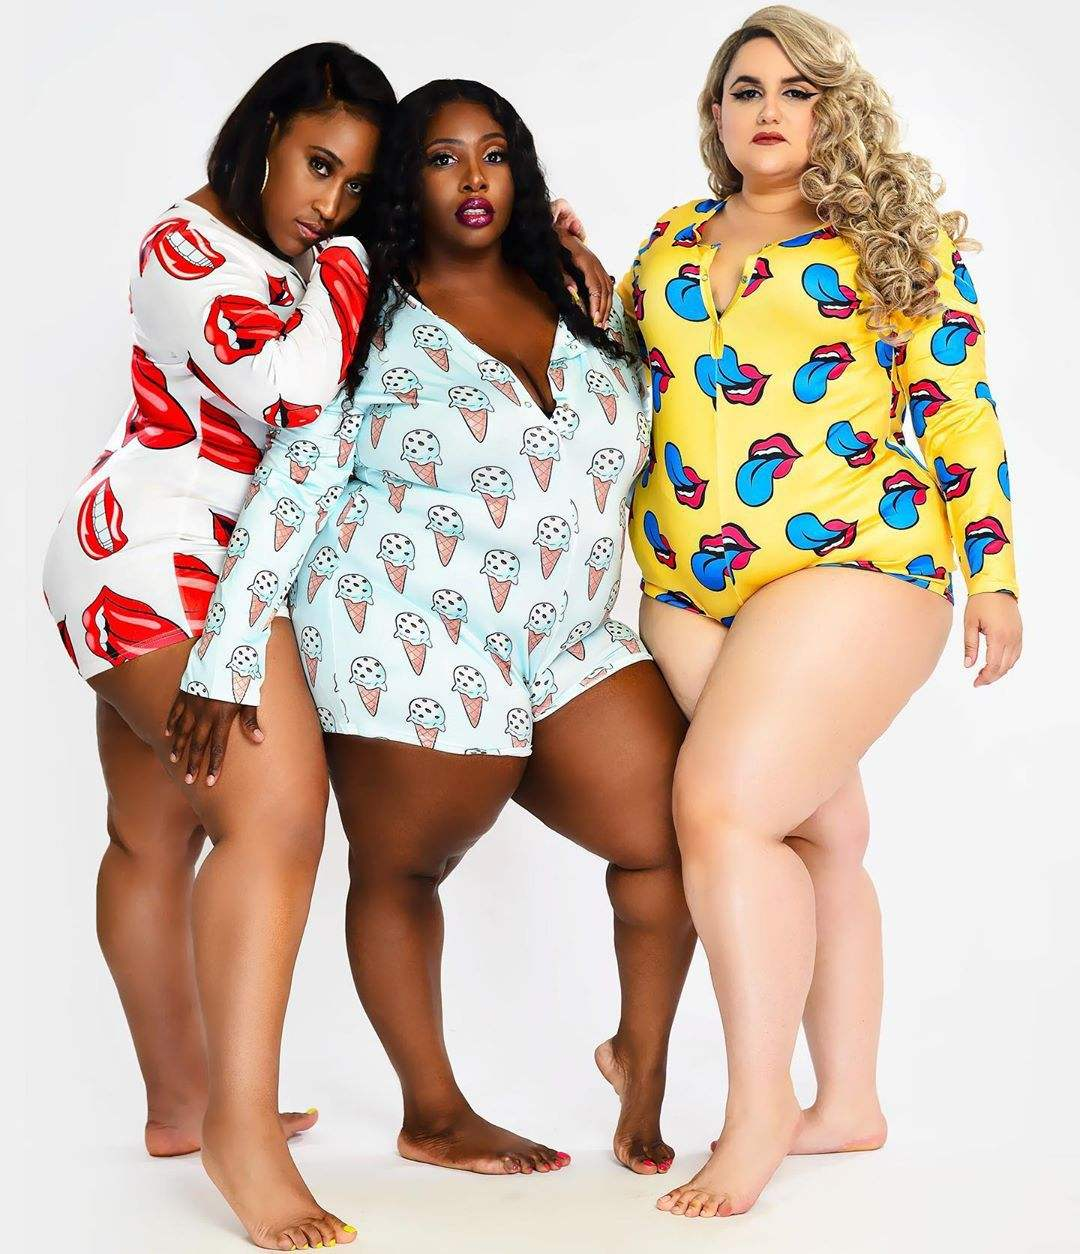 Hot Sale Funny Tight Printed Sleepwear Onesie Adult Night Wear Sexy Plus Size Jumpsuit Onesie Pajama Adult For Fat Women